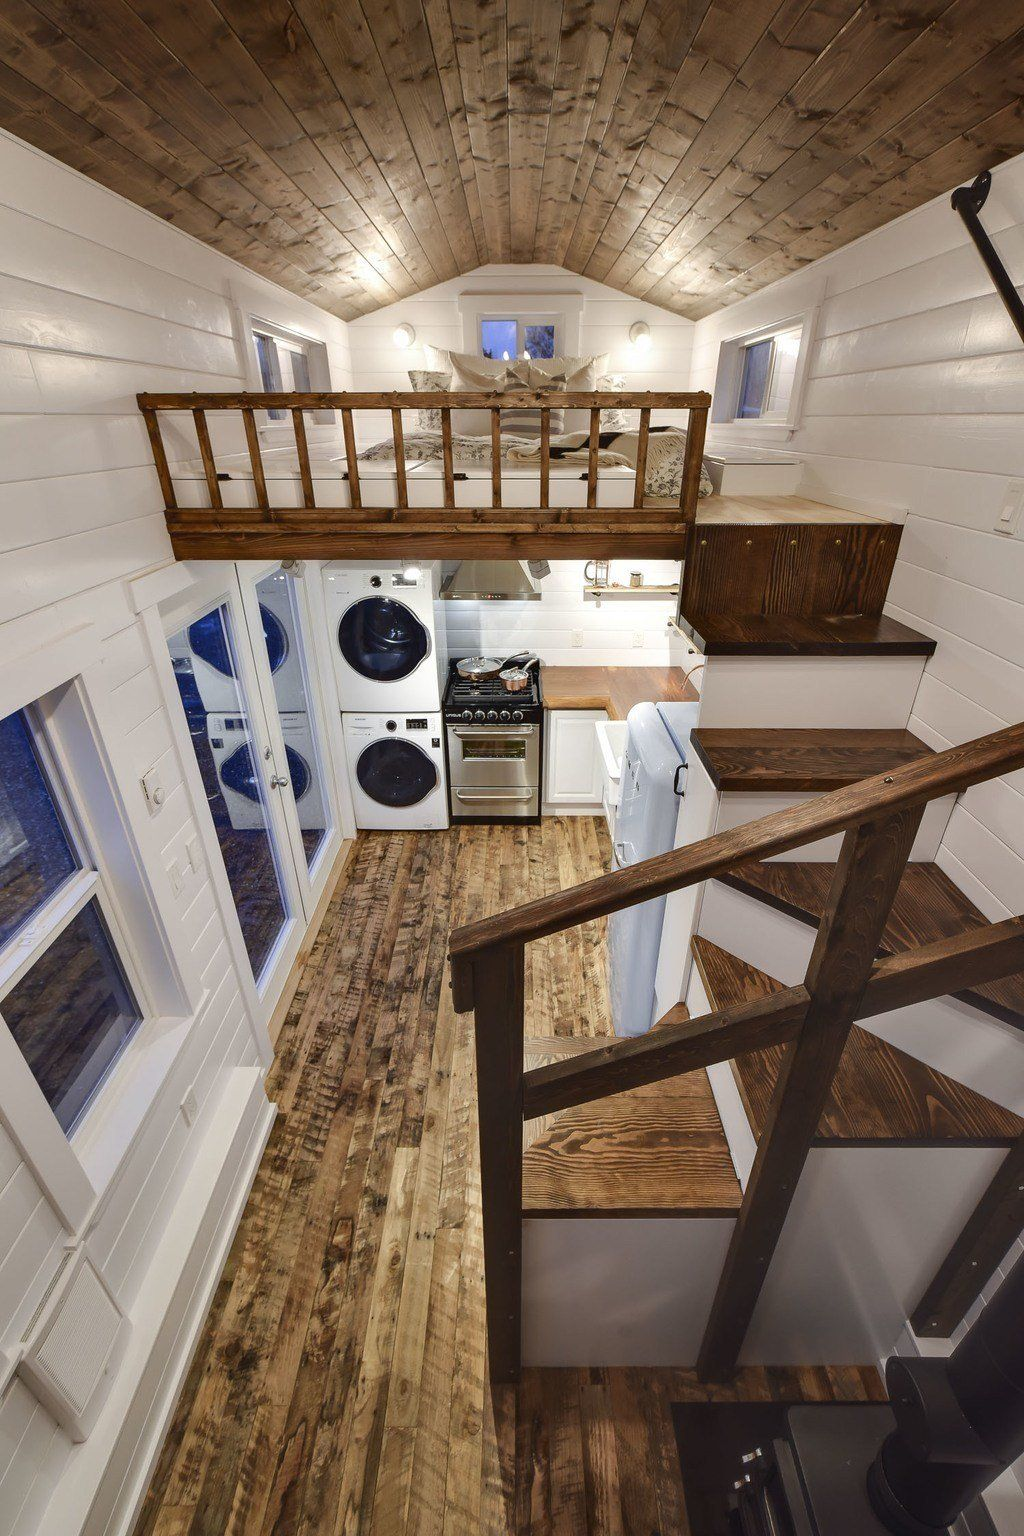 Rustic Loft | Tiny house loft, Tiny house bedroom, Tiny ...